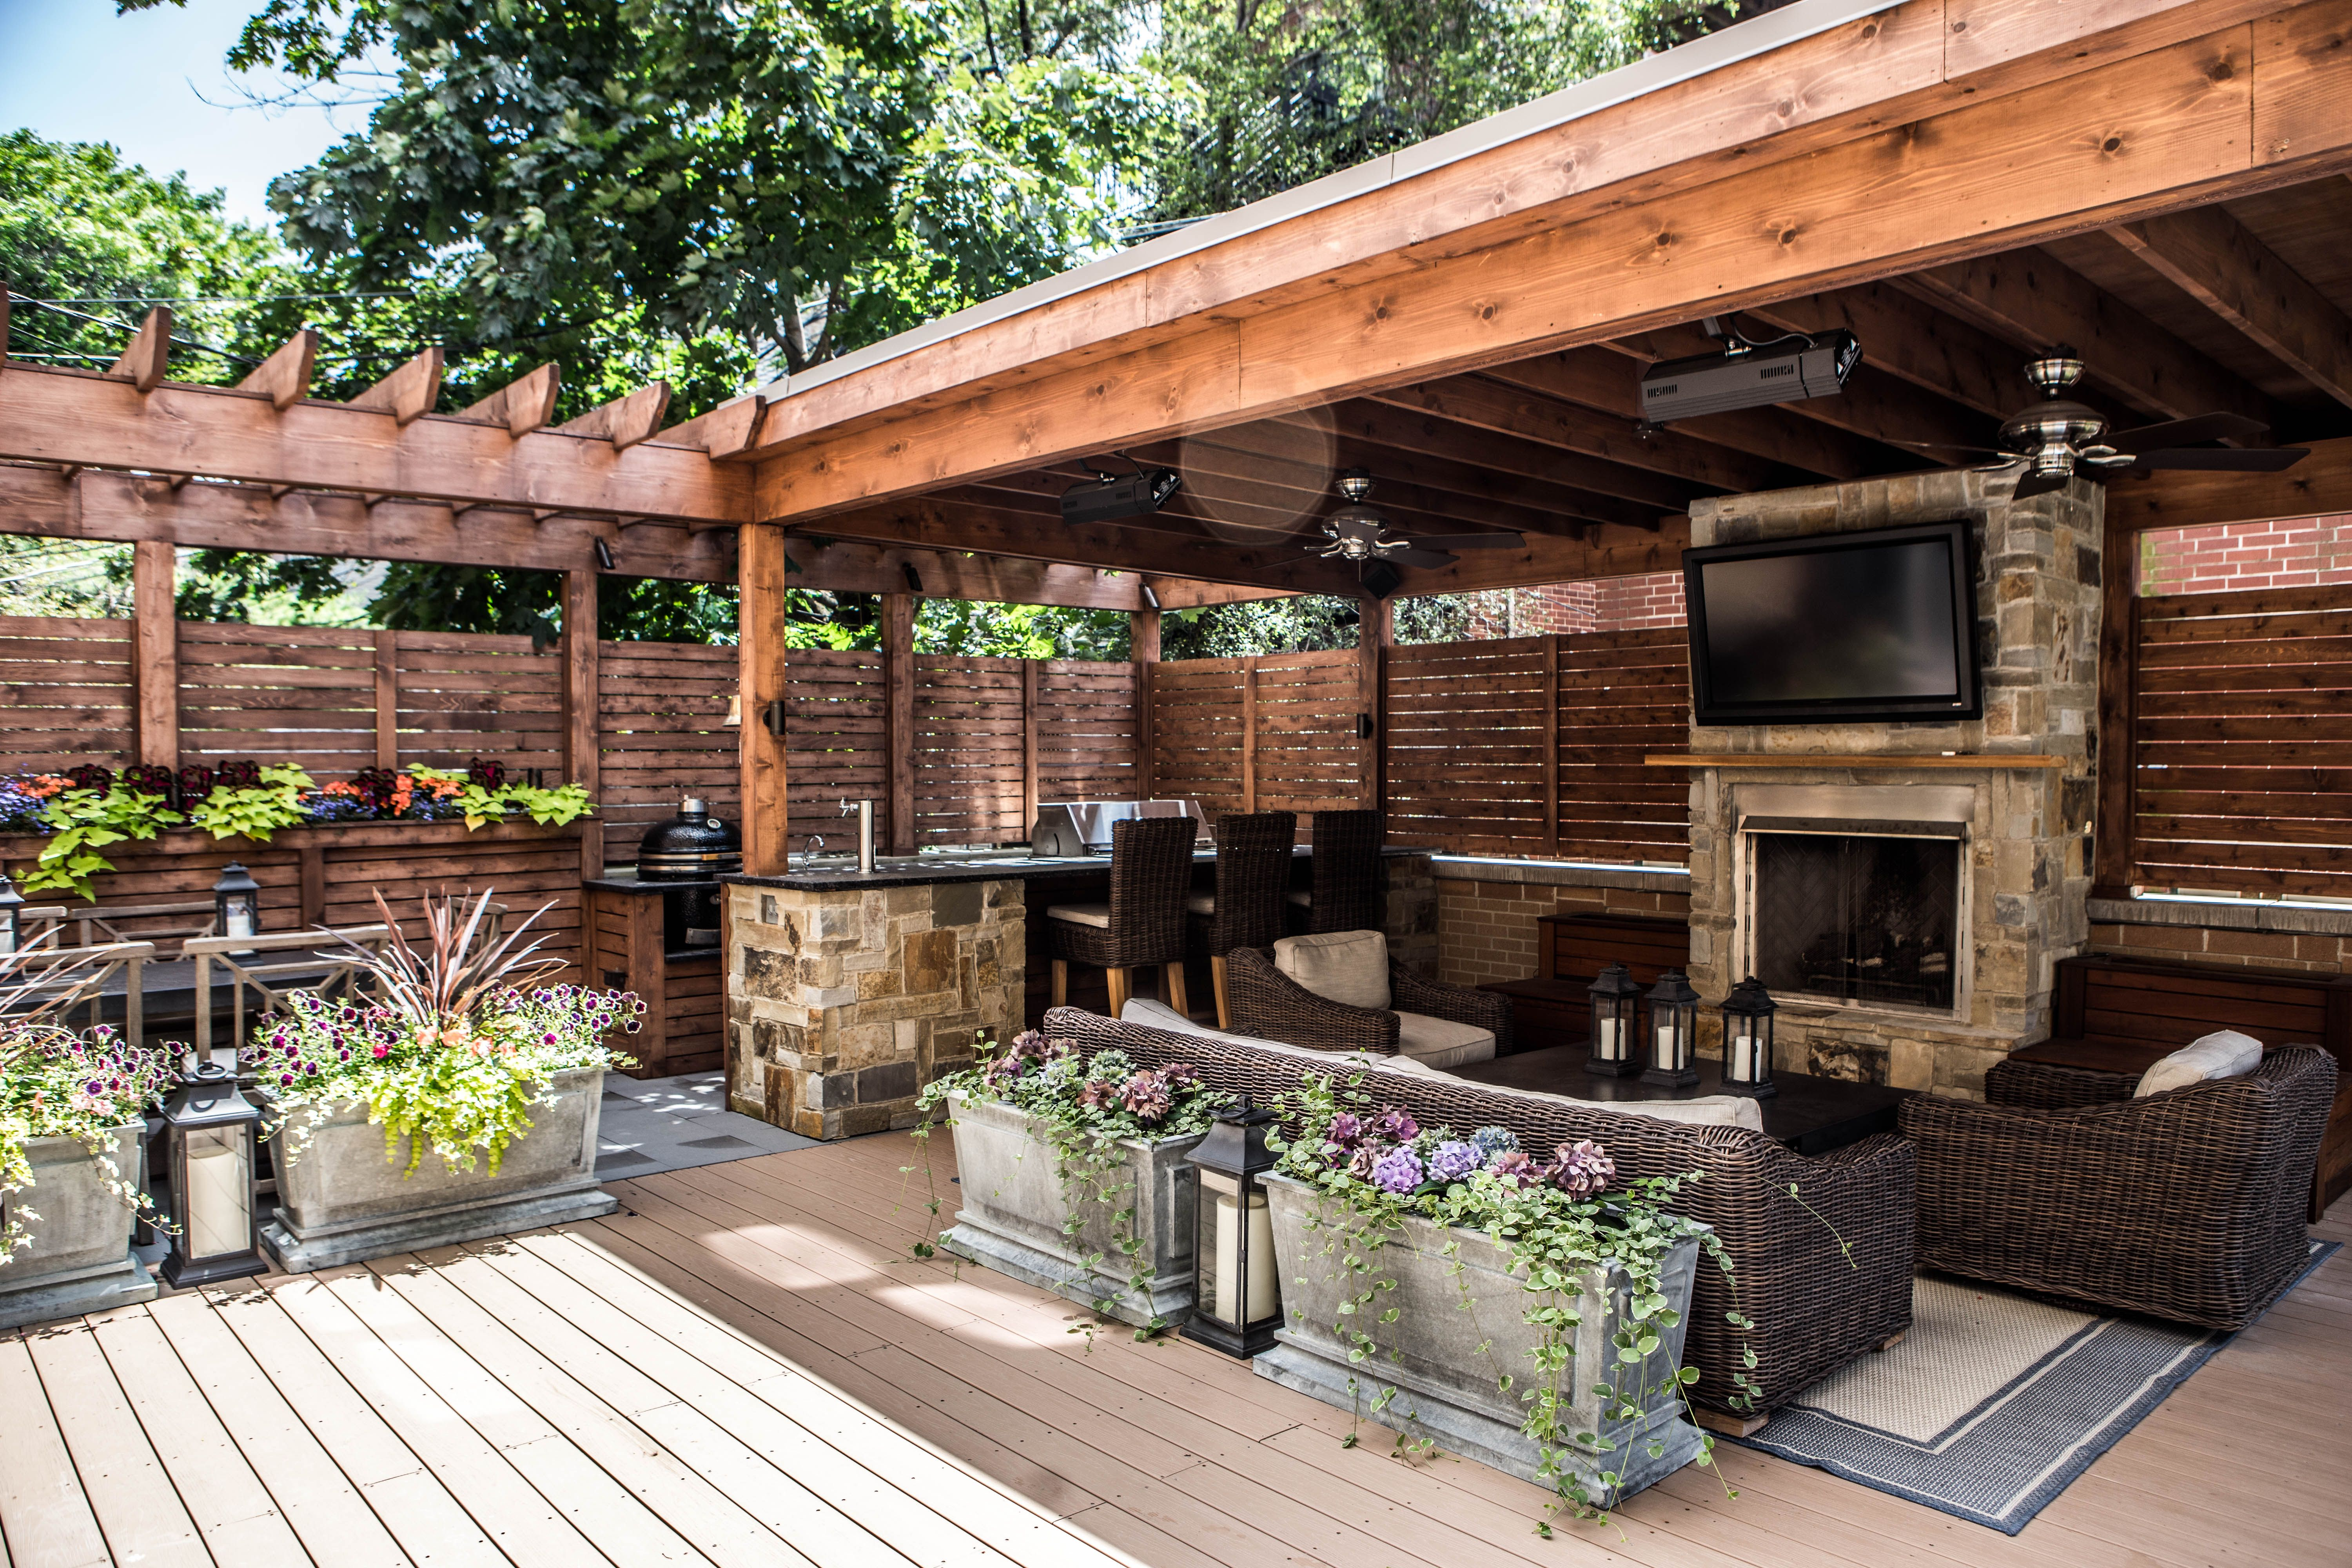 A Chicago Outdoor Space Check out more of our projects at